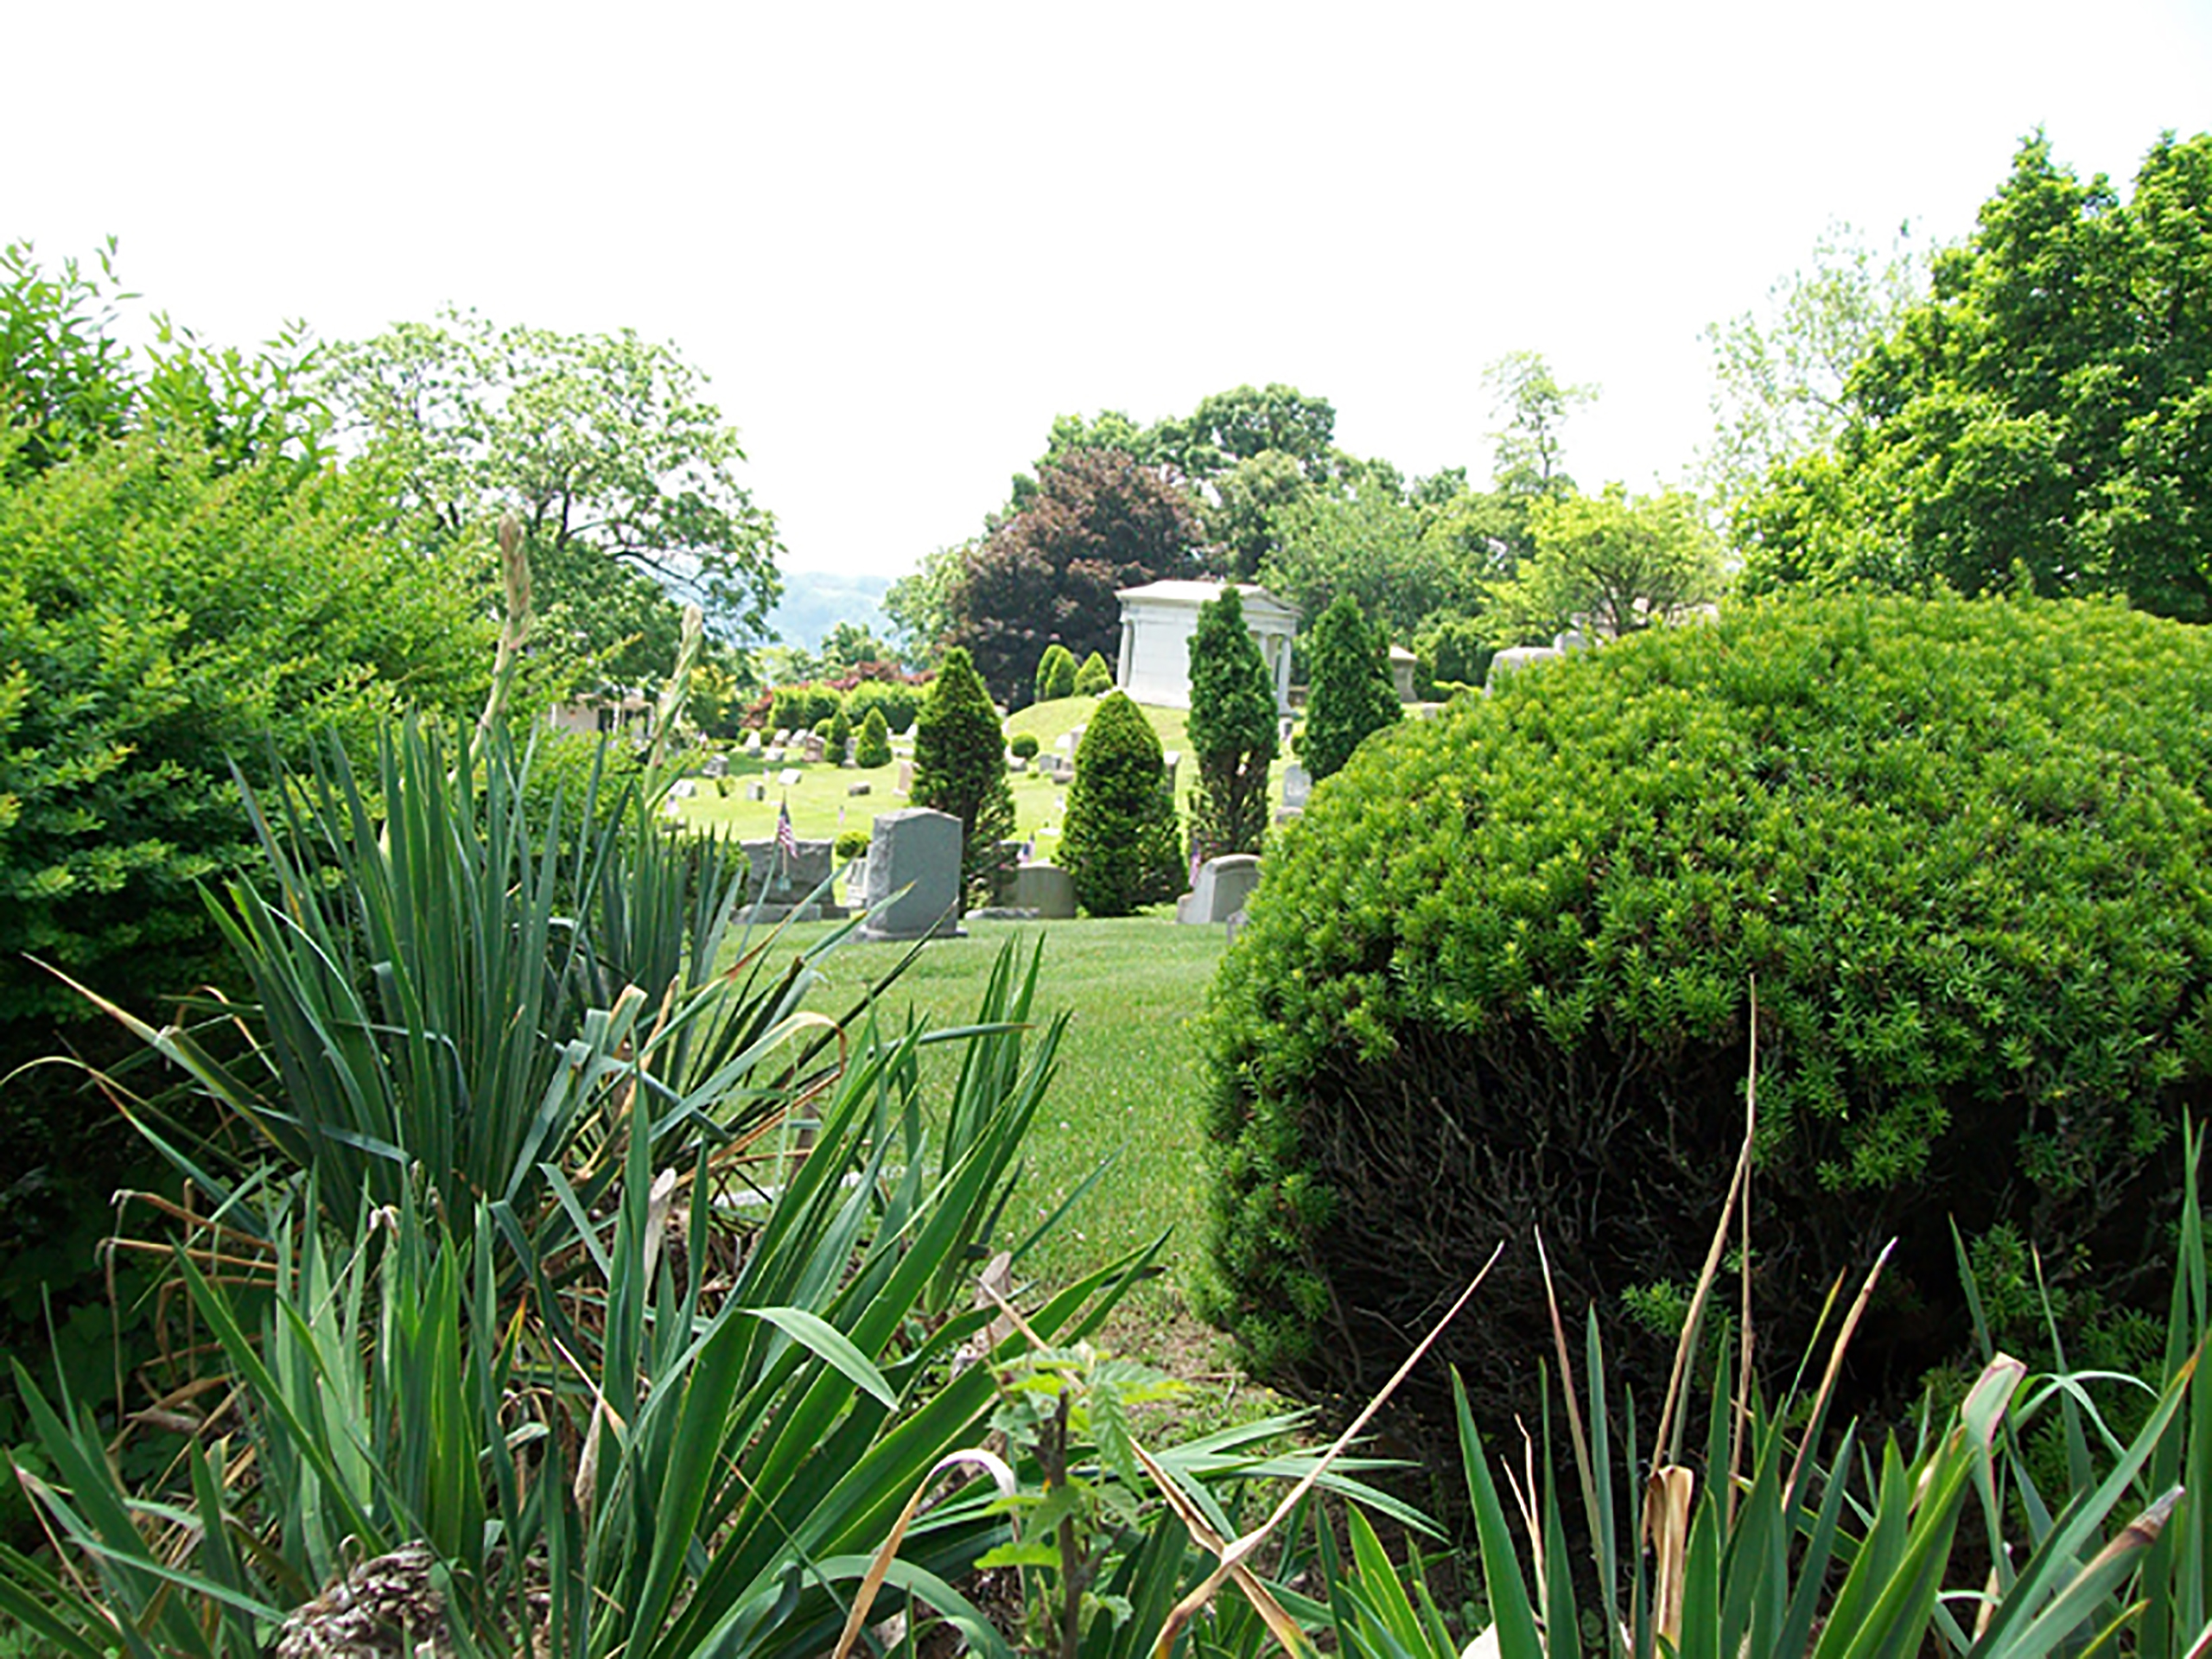 Sewickley Cemetery image 3